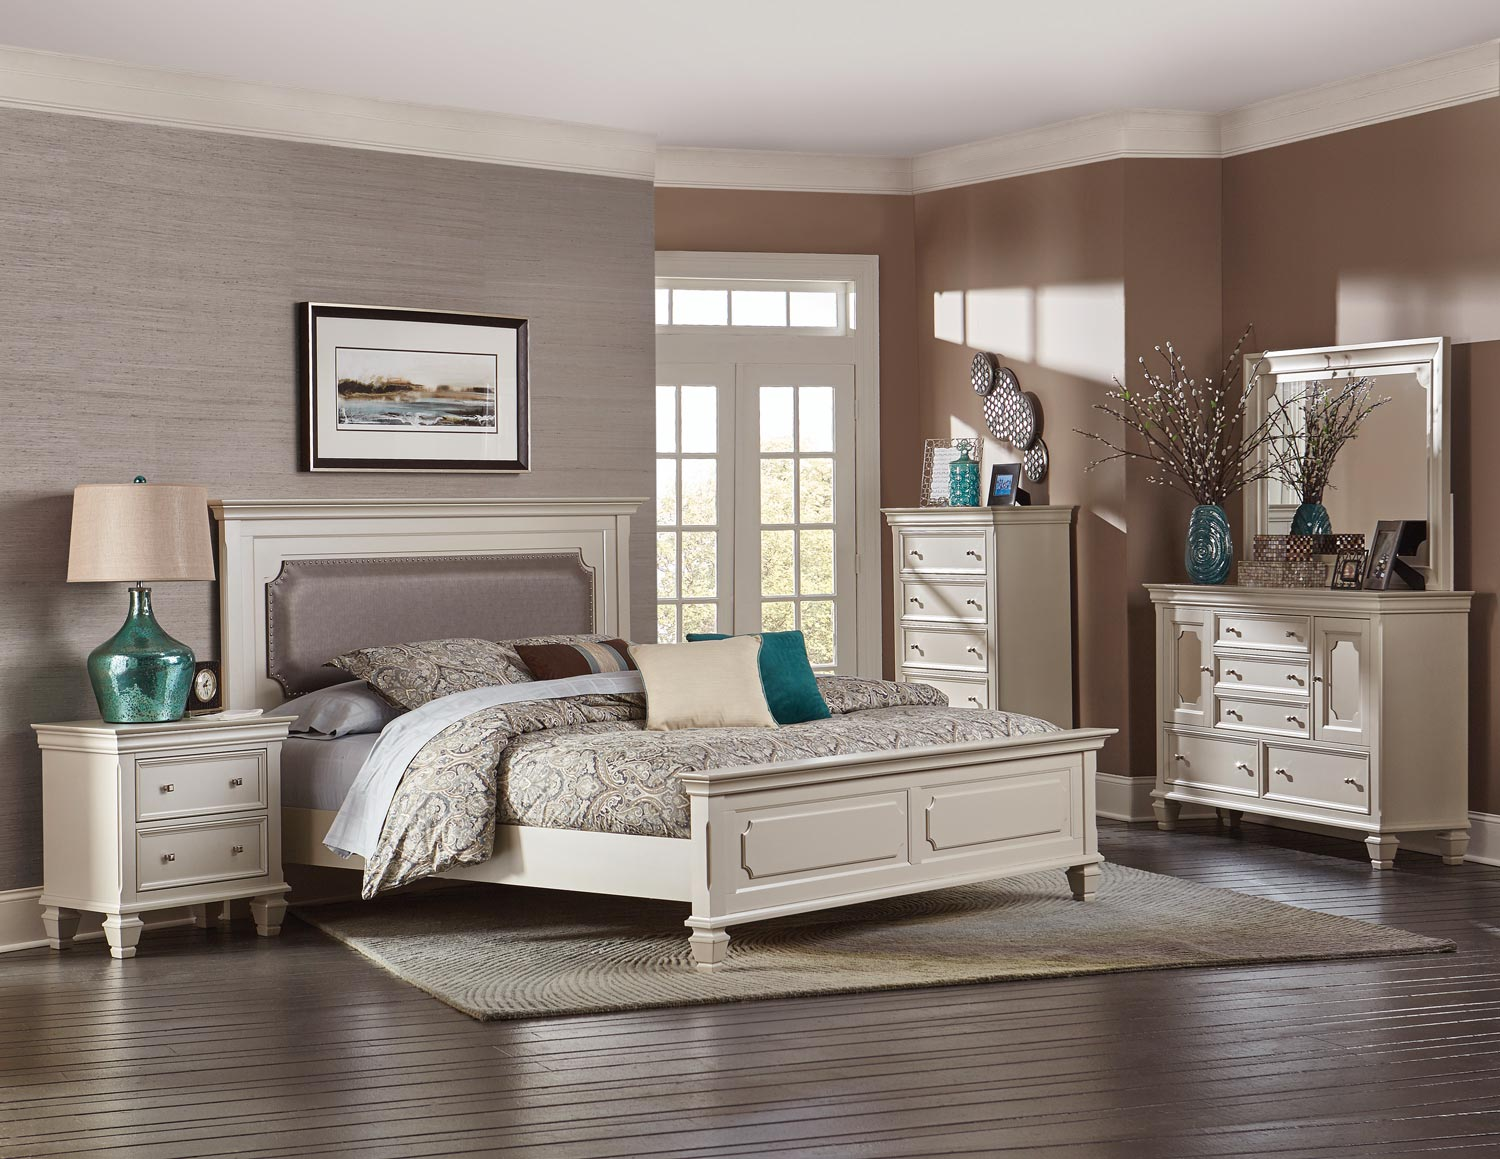 Homelegance Odette Upholstered Panel Bedroom Set - Champagne